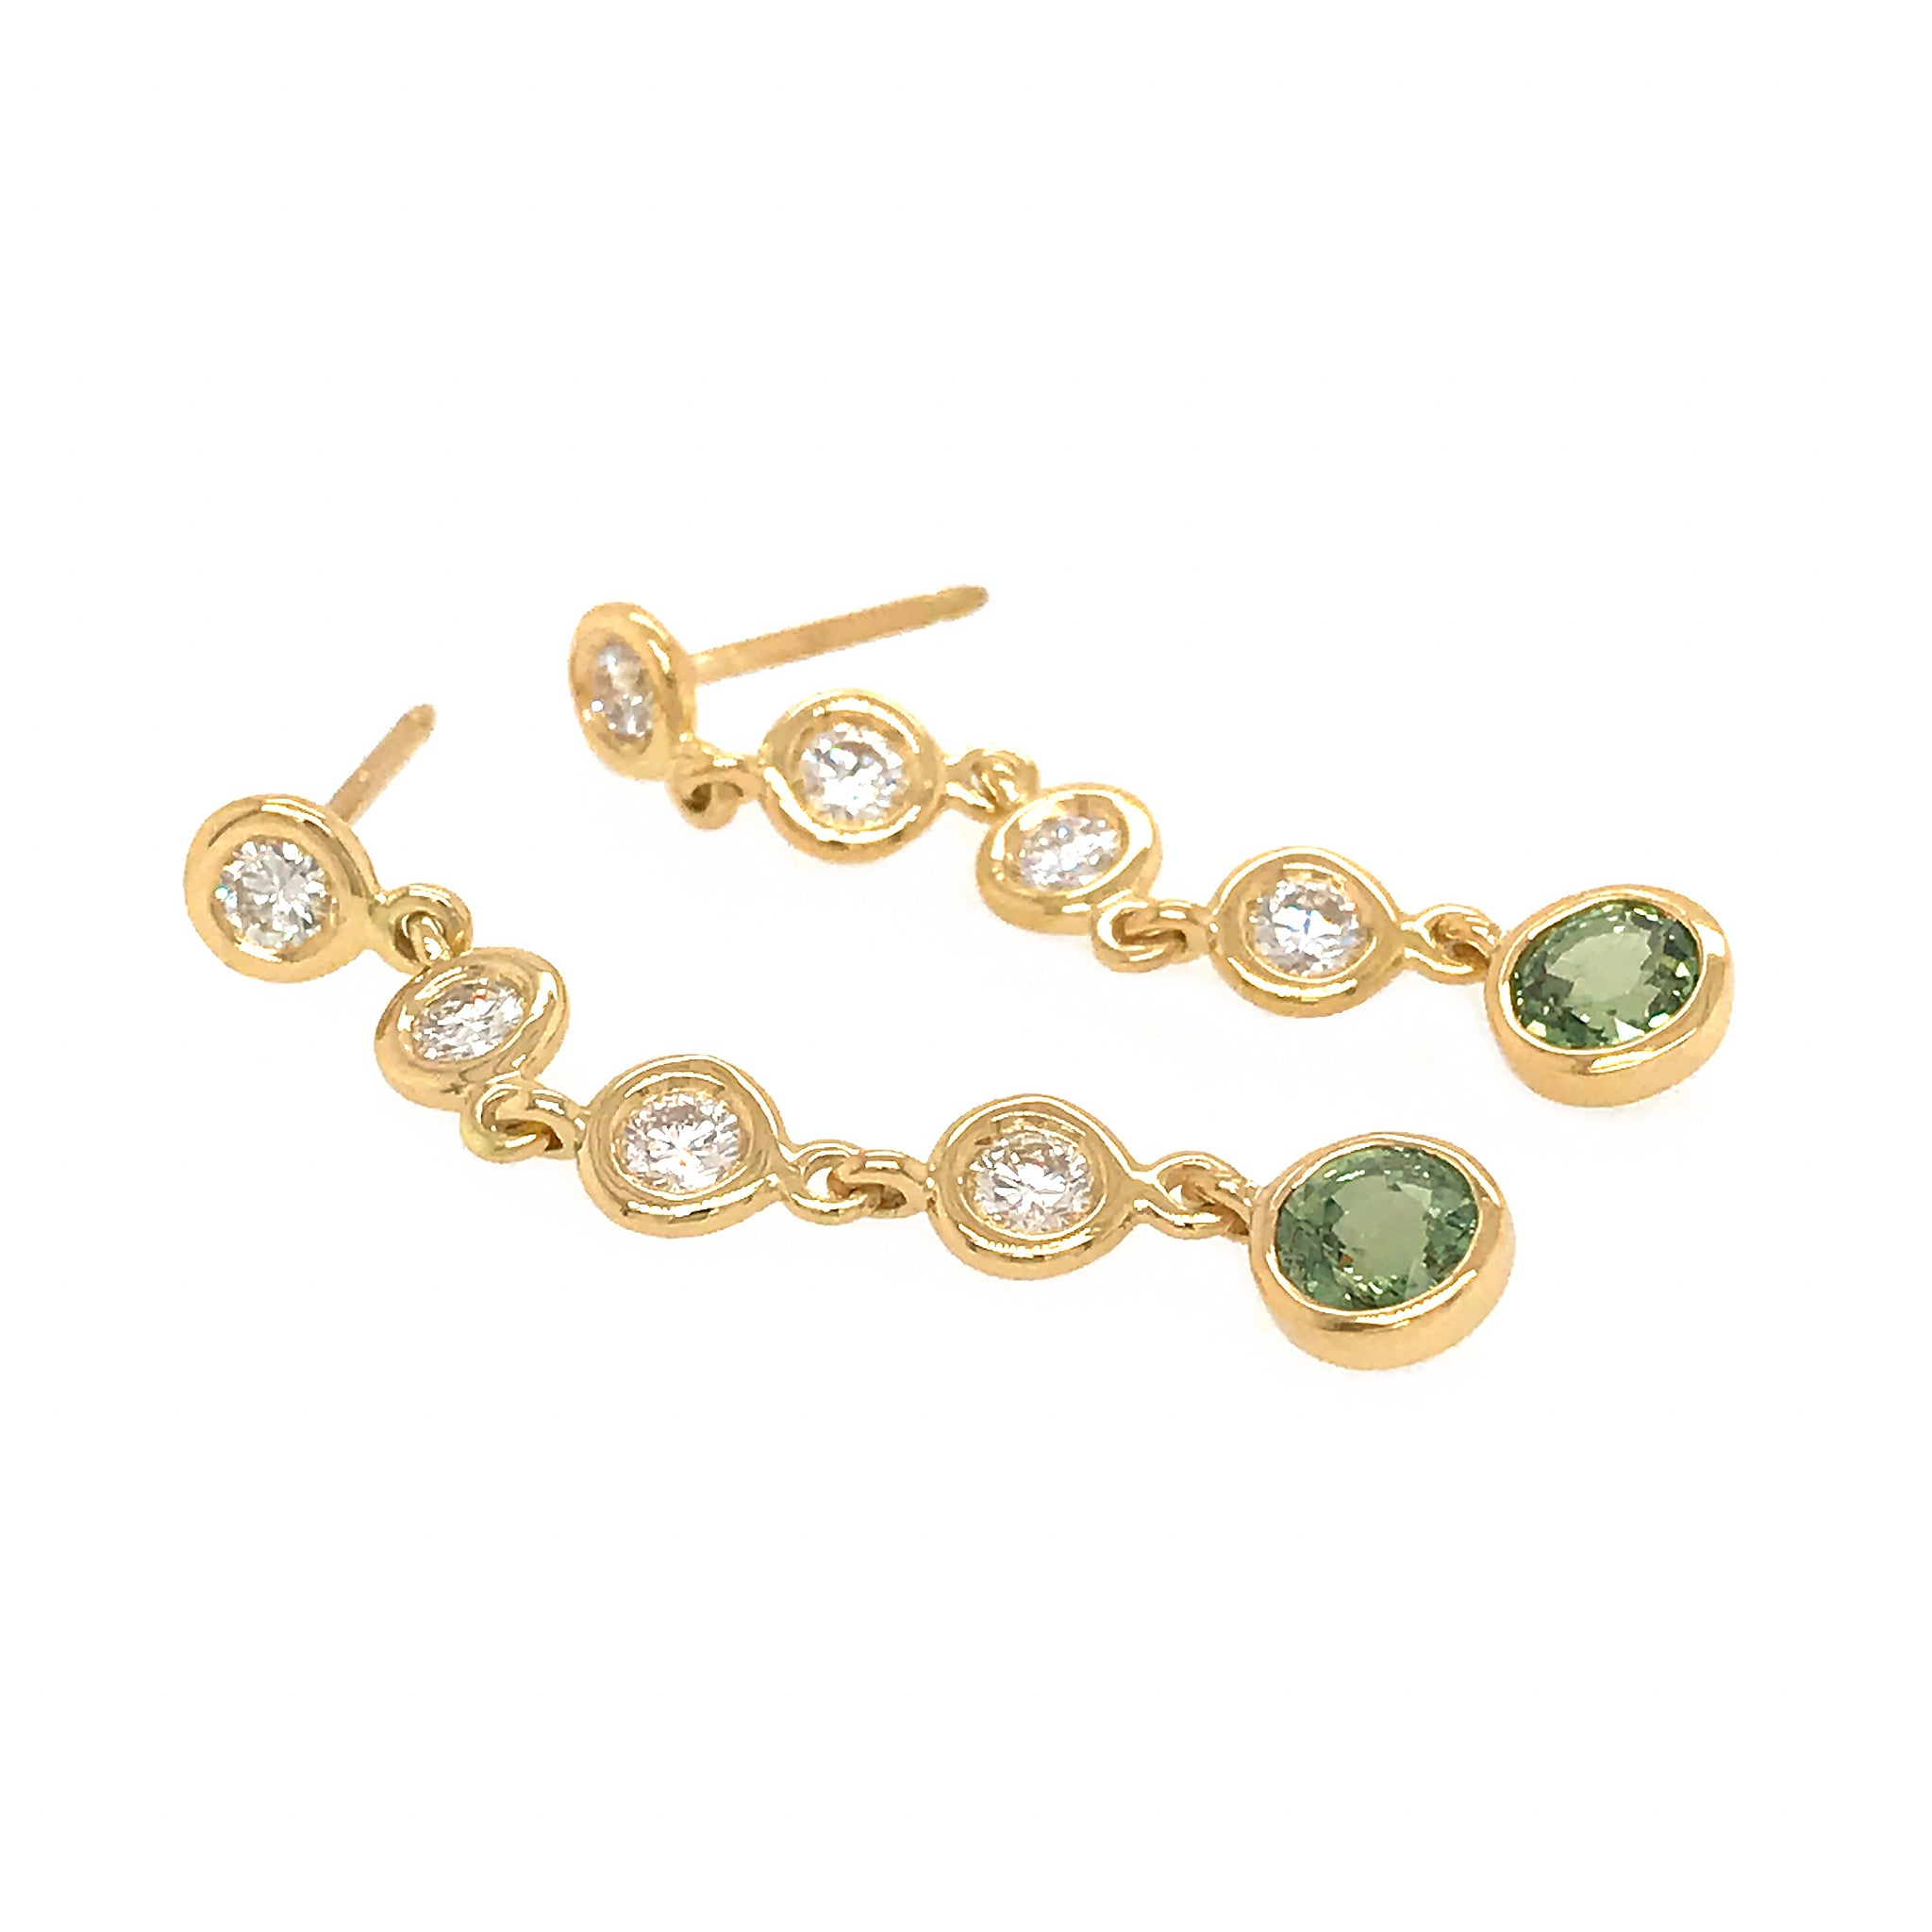 FAB DROPS 18K YELLOW GOLD DIAMOND AND GREEN SAPPHIRE DROP EARRINGS